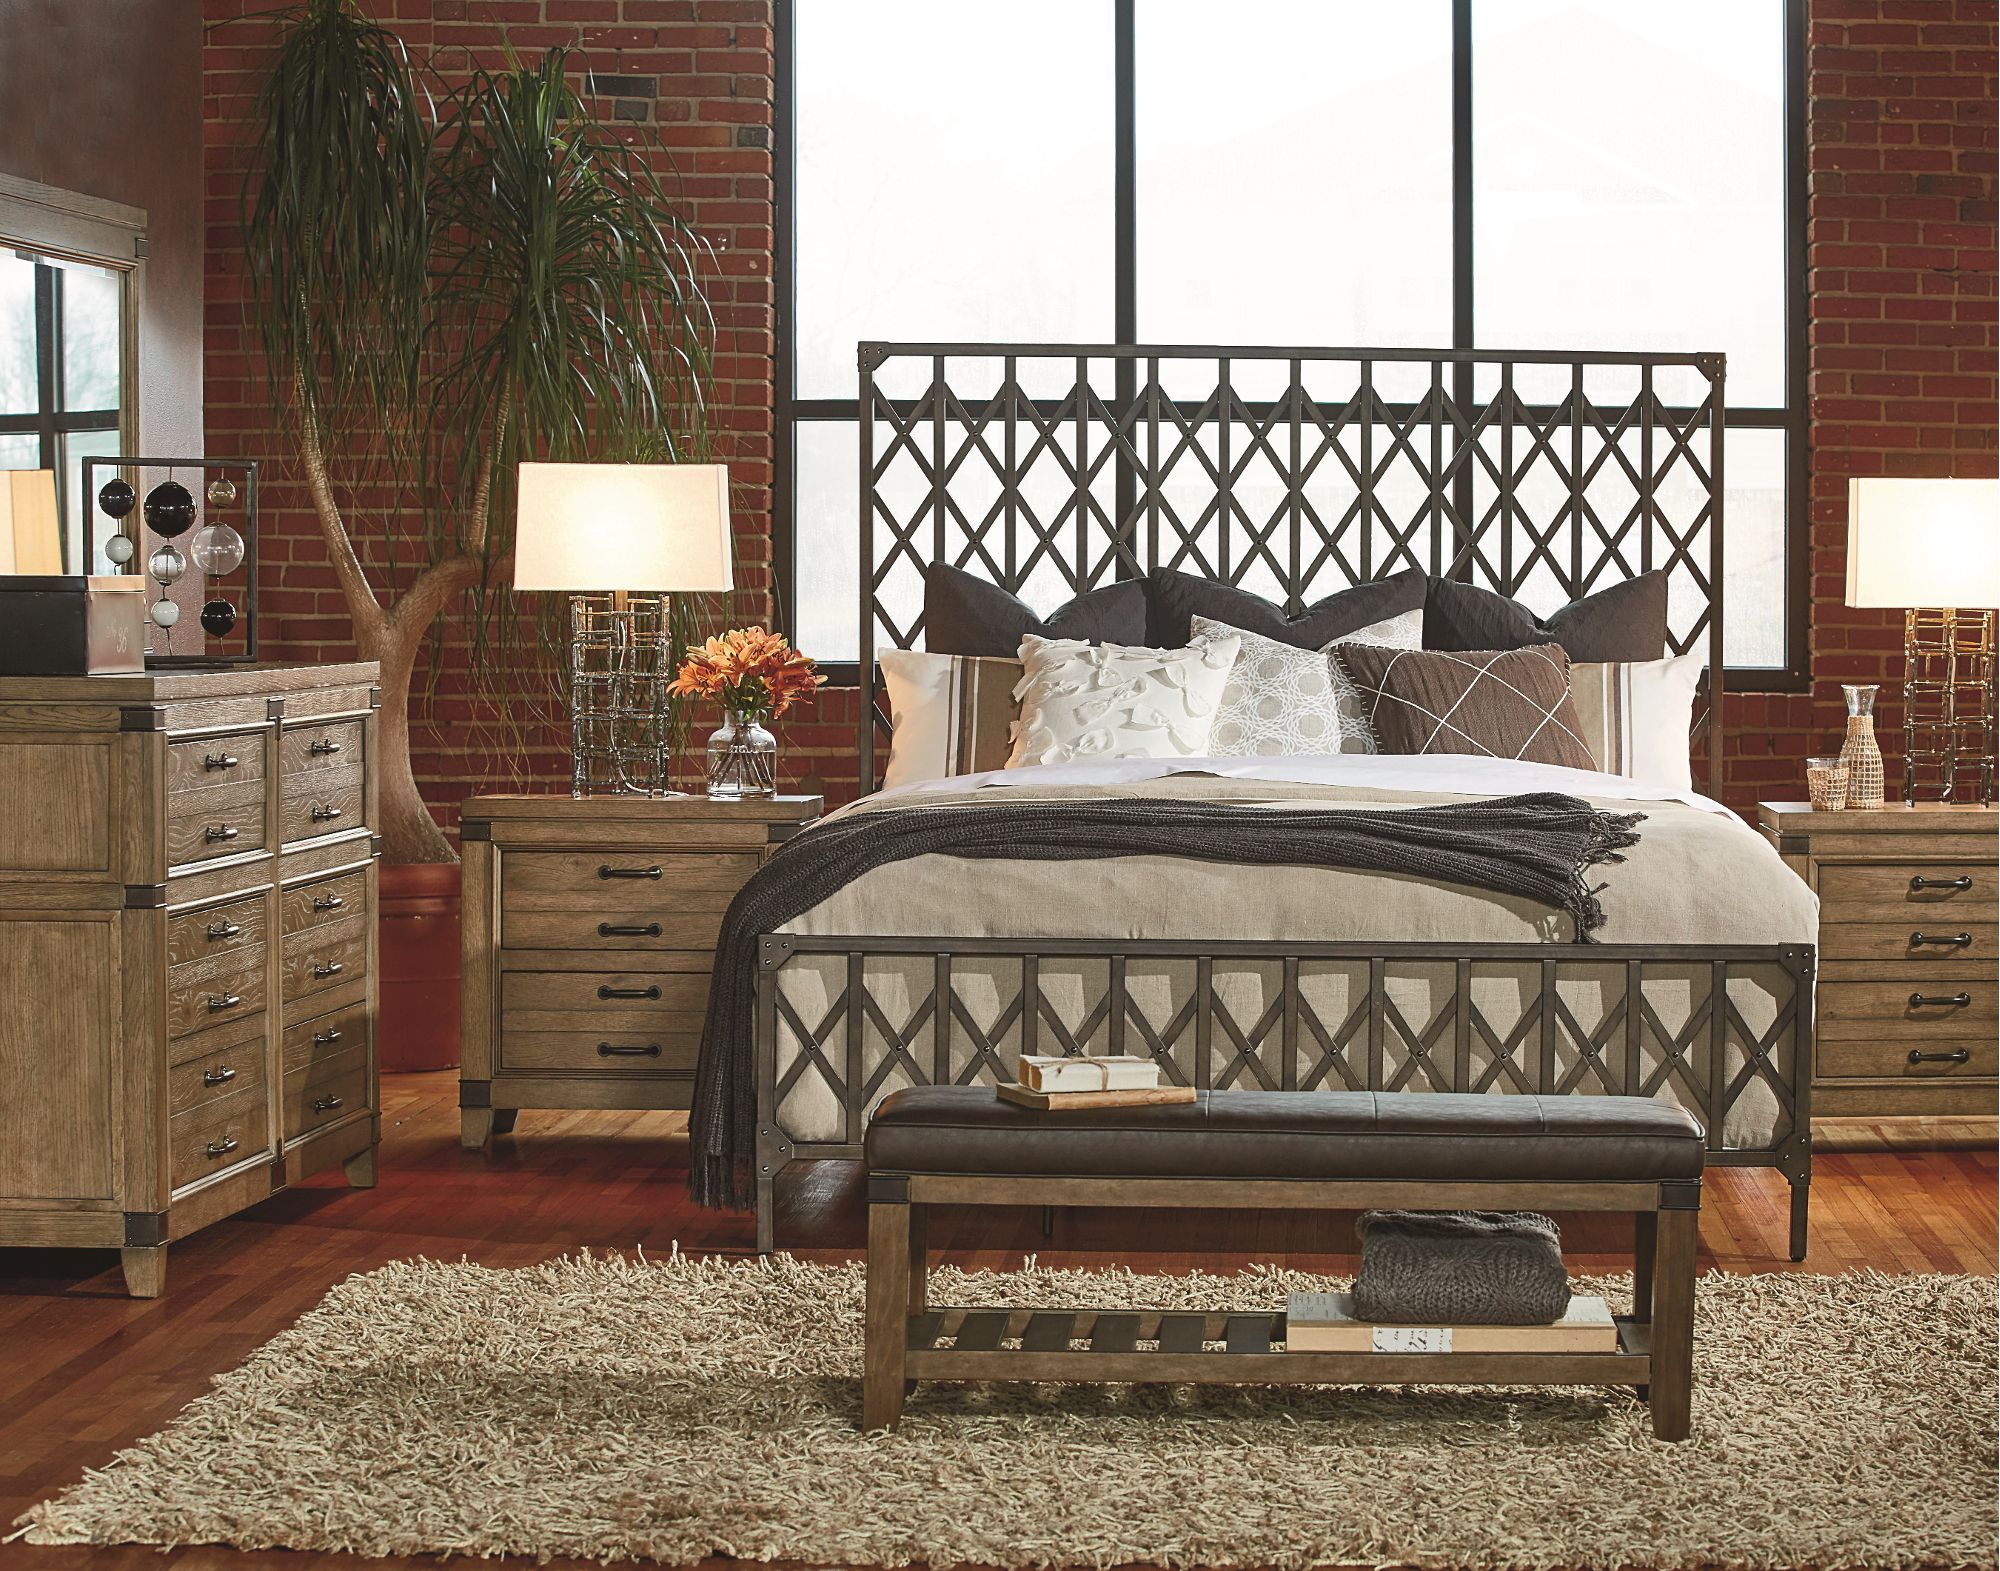 image cassic industrial bedroom furniture. 56105005 In By Legacy Classic Furniture Jonesboro, AR - Metalworks Metal Bed, Queen Image Cassic Industrial Bedroom .